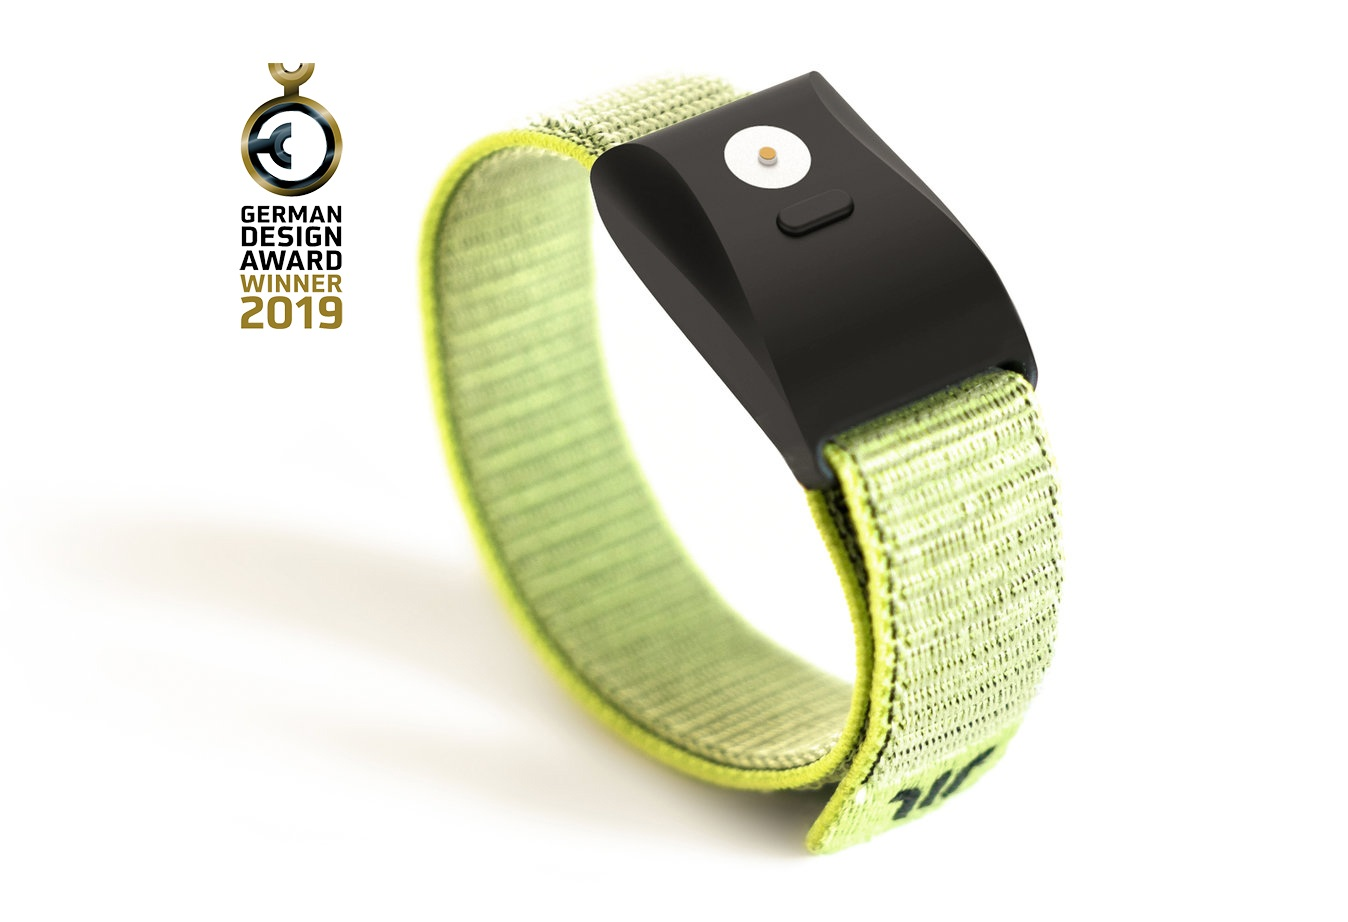 Wayband wristband with elastic green strap and matte black face, German Design Award Winner 2019